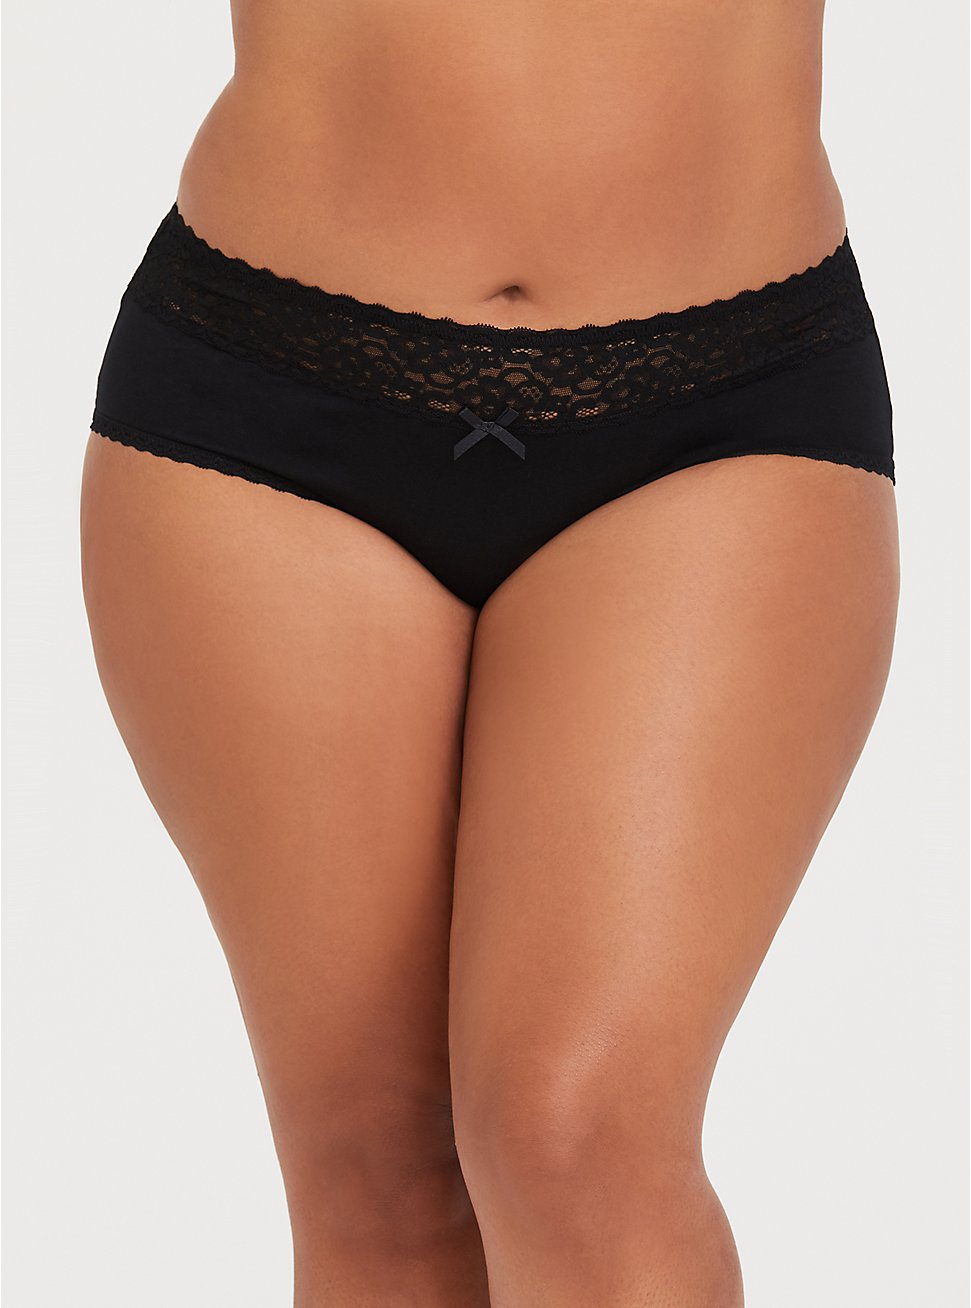 Black Wide Lace Cotton Cheeky Panty, , fitModel1-hires